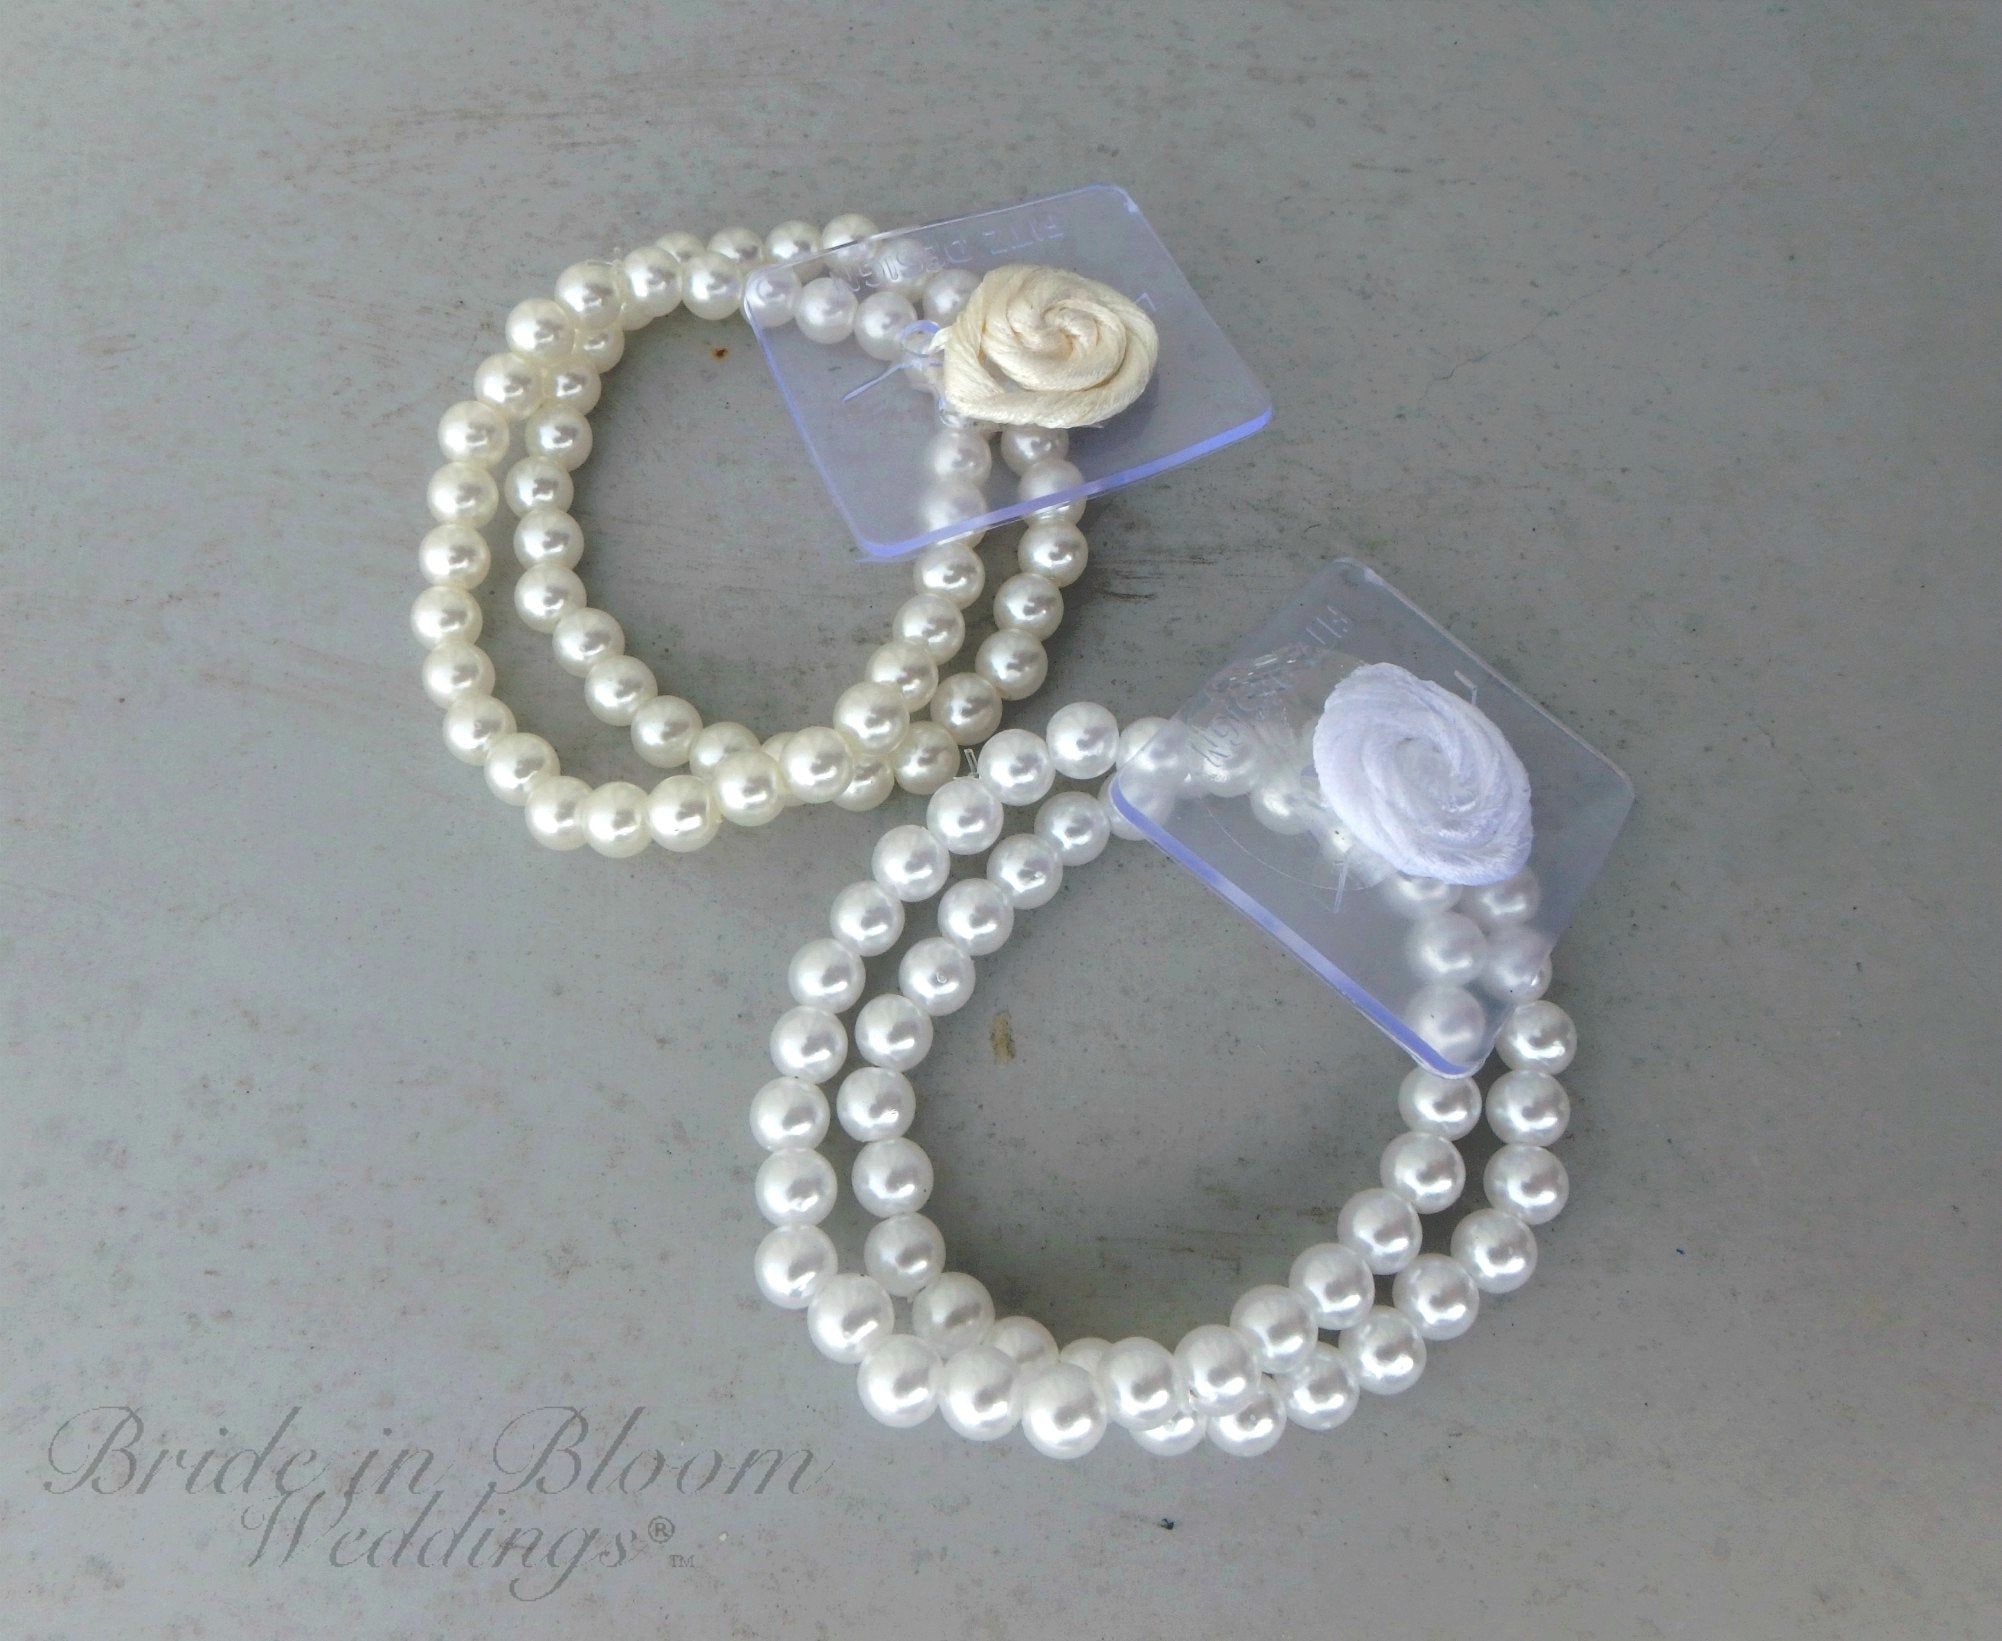 DIY wrist corsage, White pearl bead bracelet, DIY wedding supplies